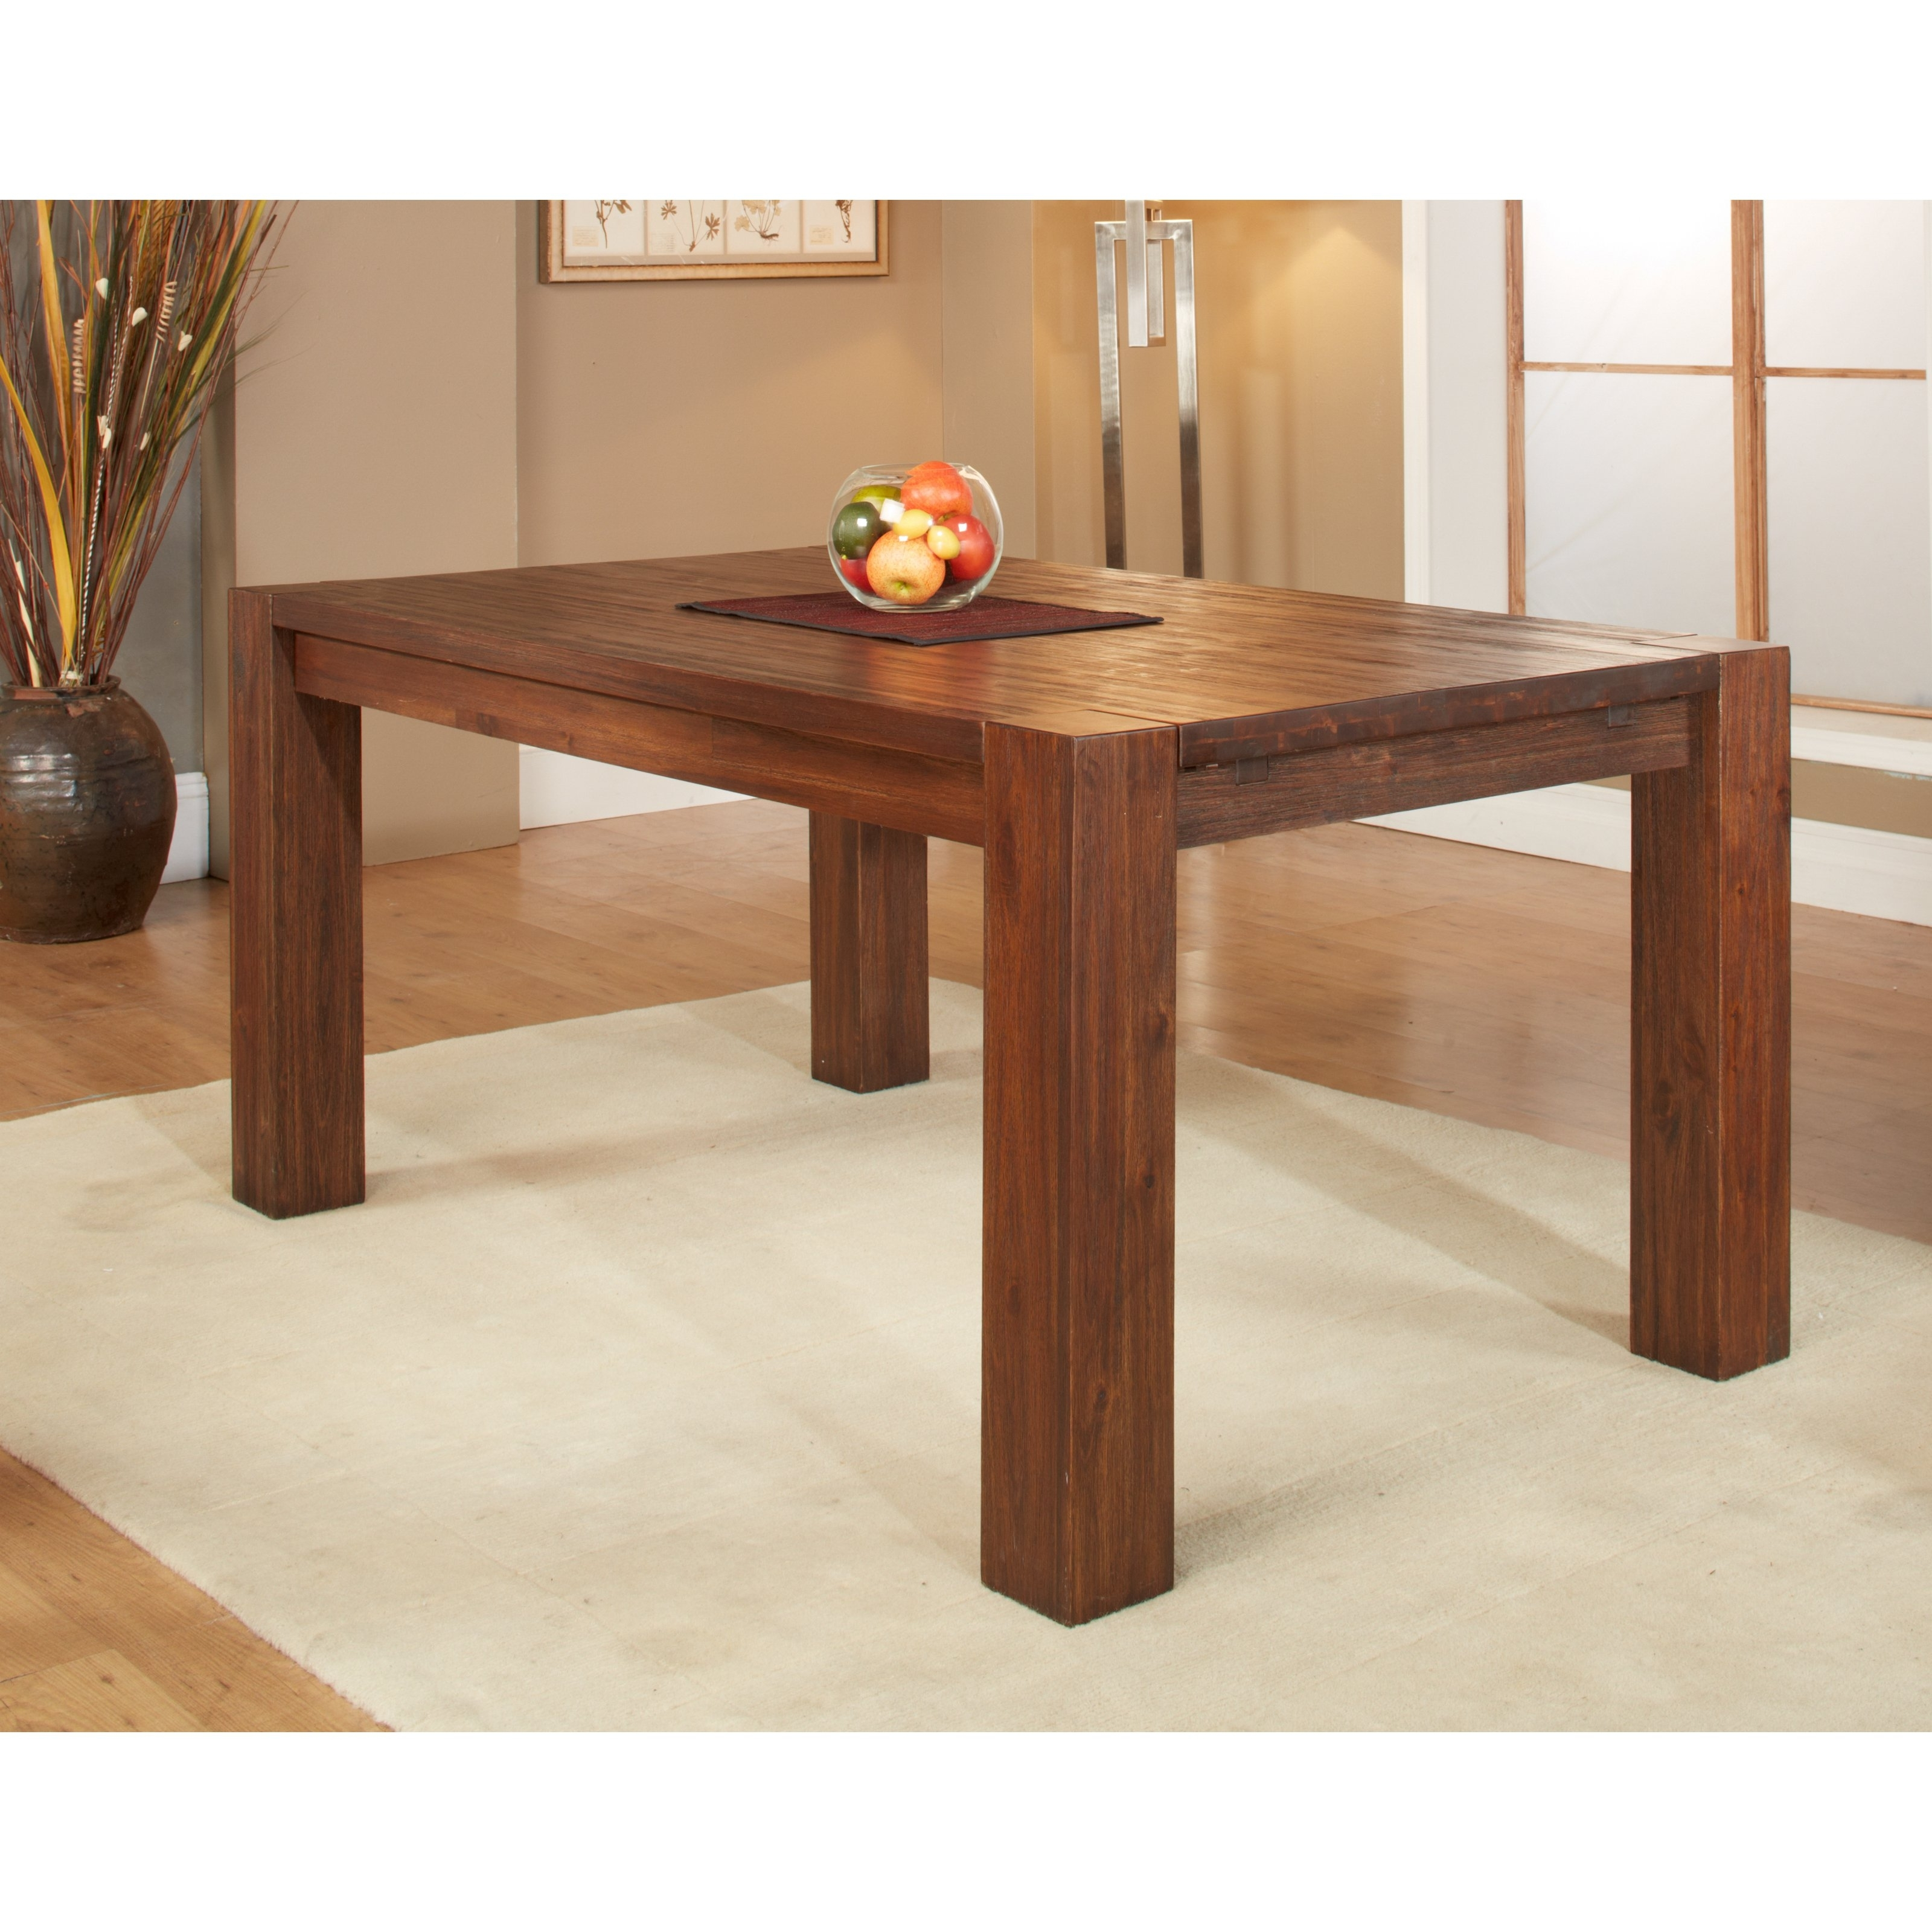 Solid Wood Dining Tables Inside Most Recently Released Things To Know Before Buying A Solid Wood Dining Table – Blogalways (View 17 of 25)